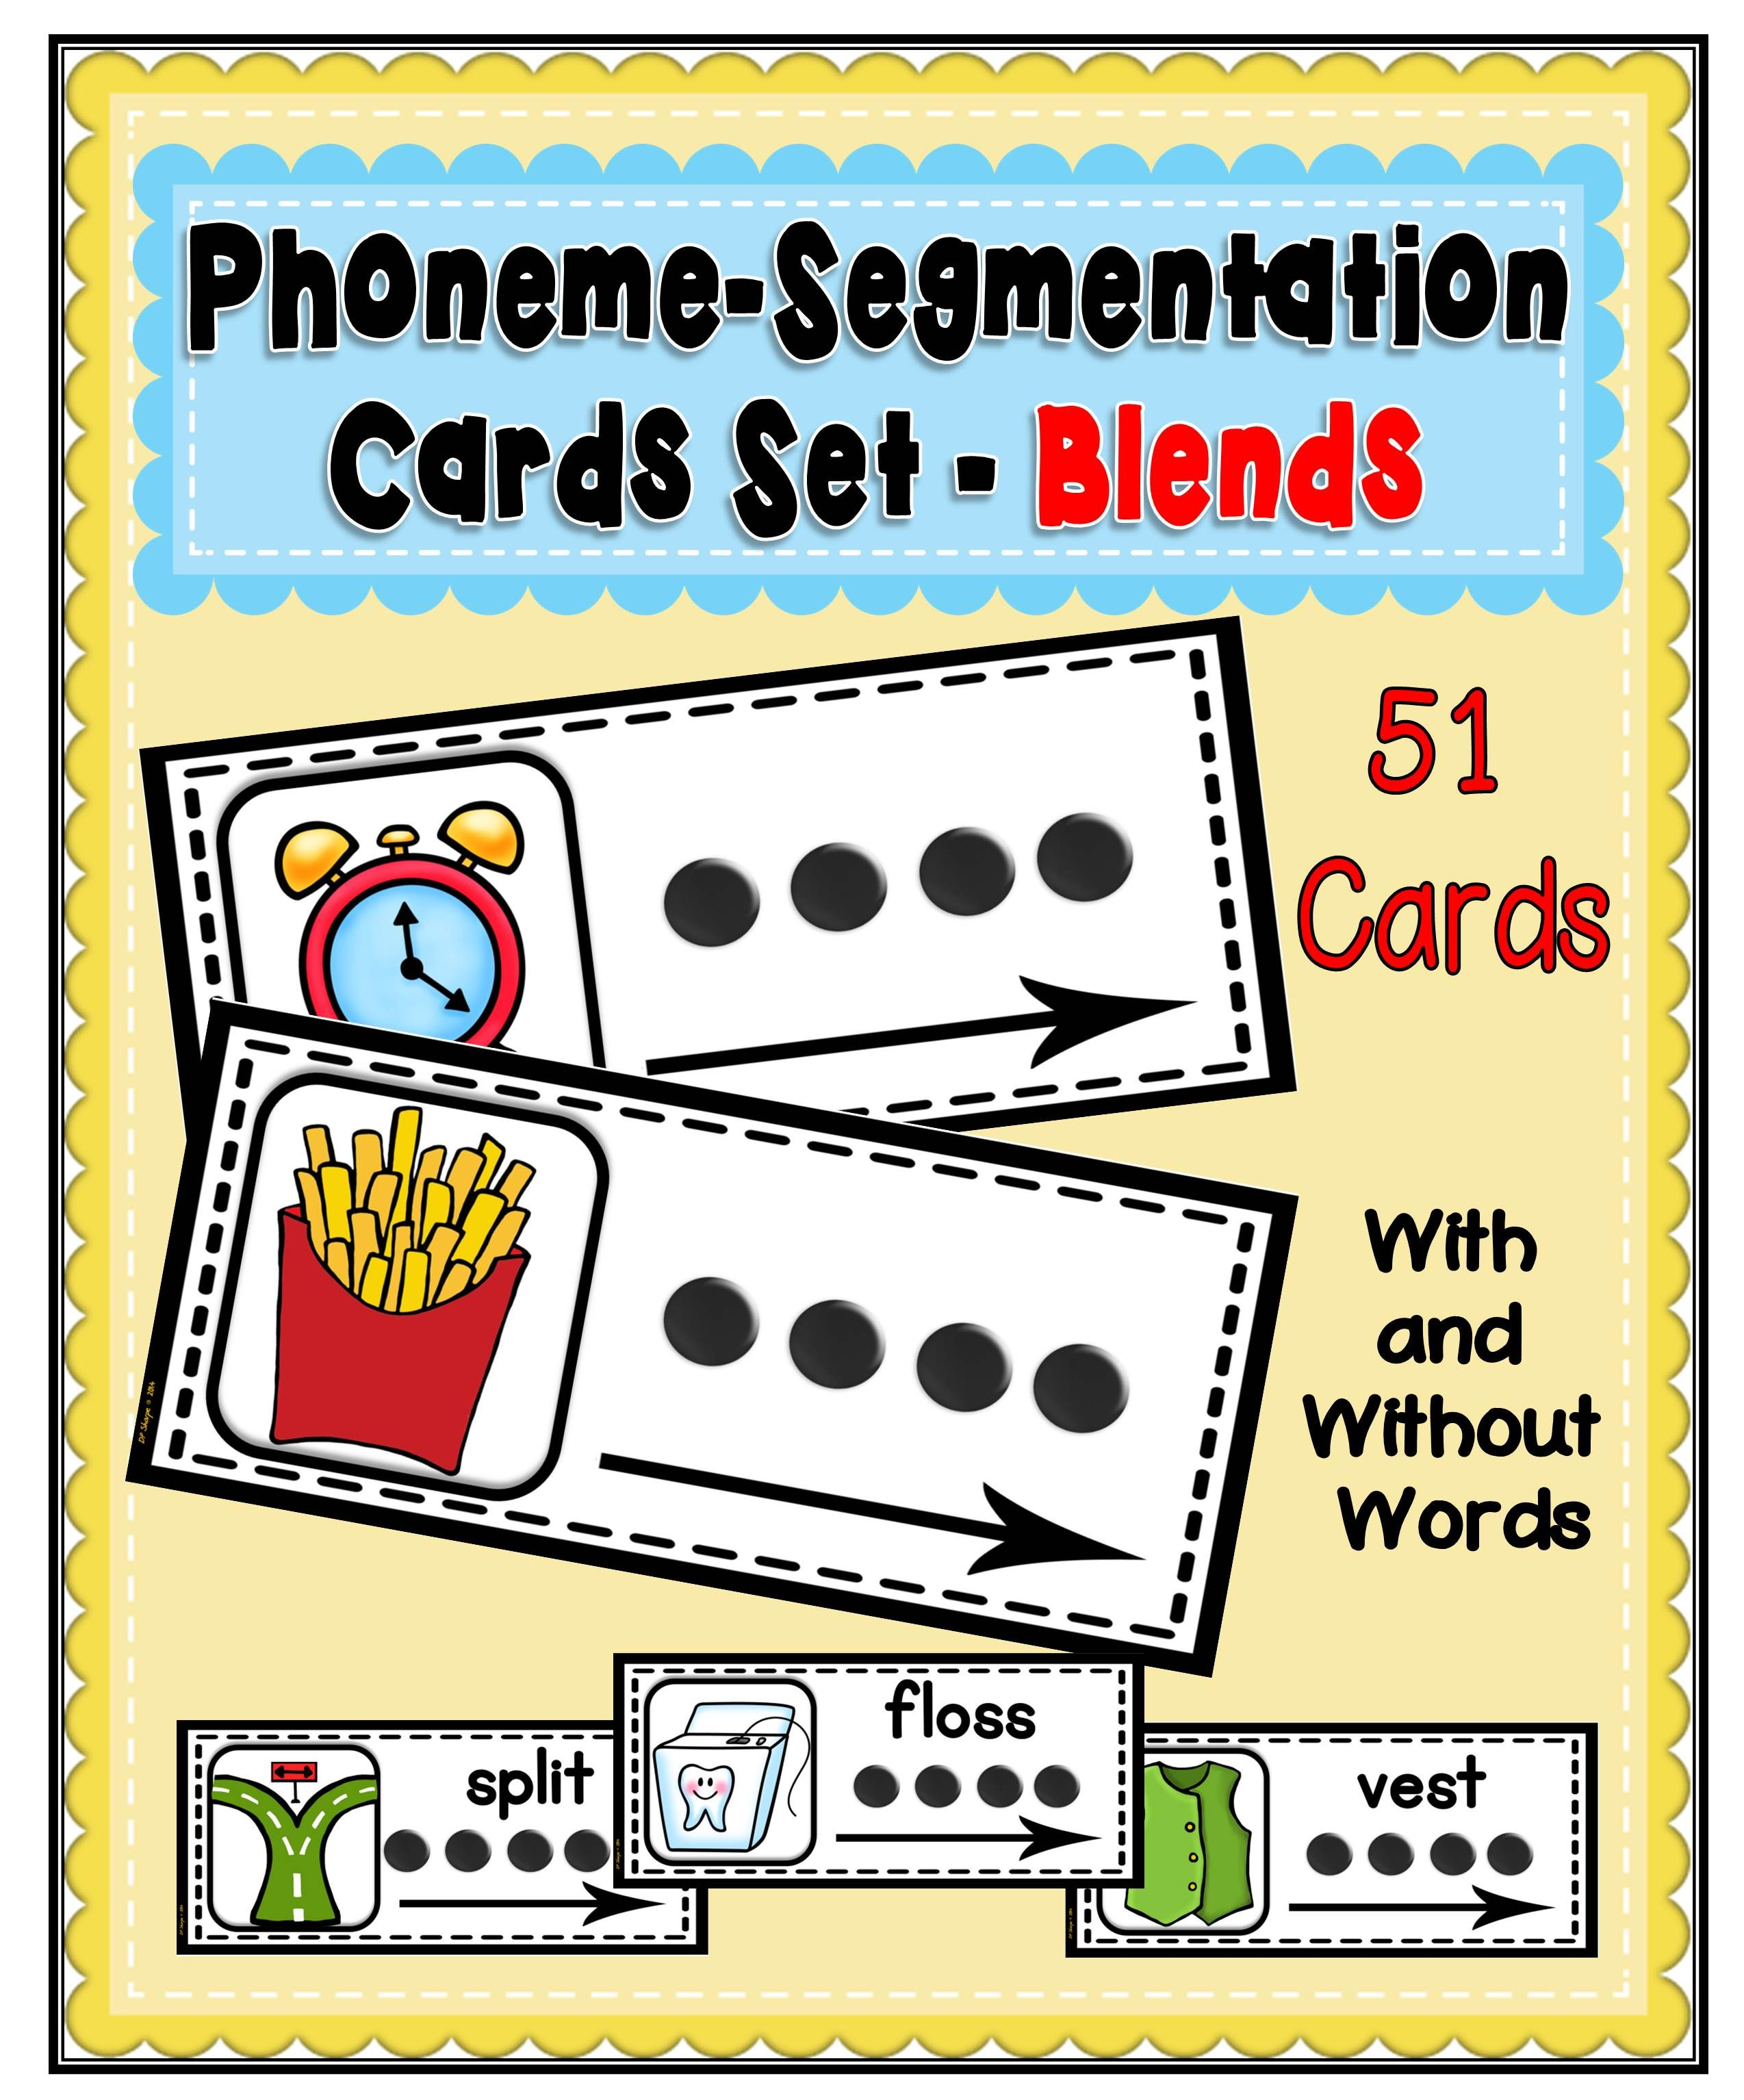 Phoneme Segmentation Card Set Blends